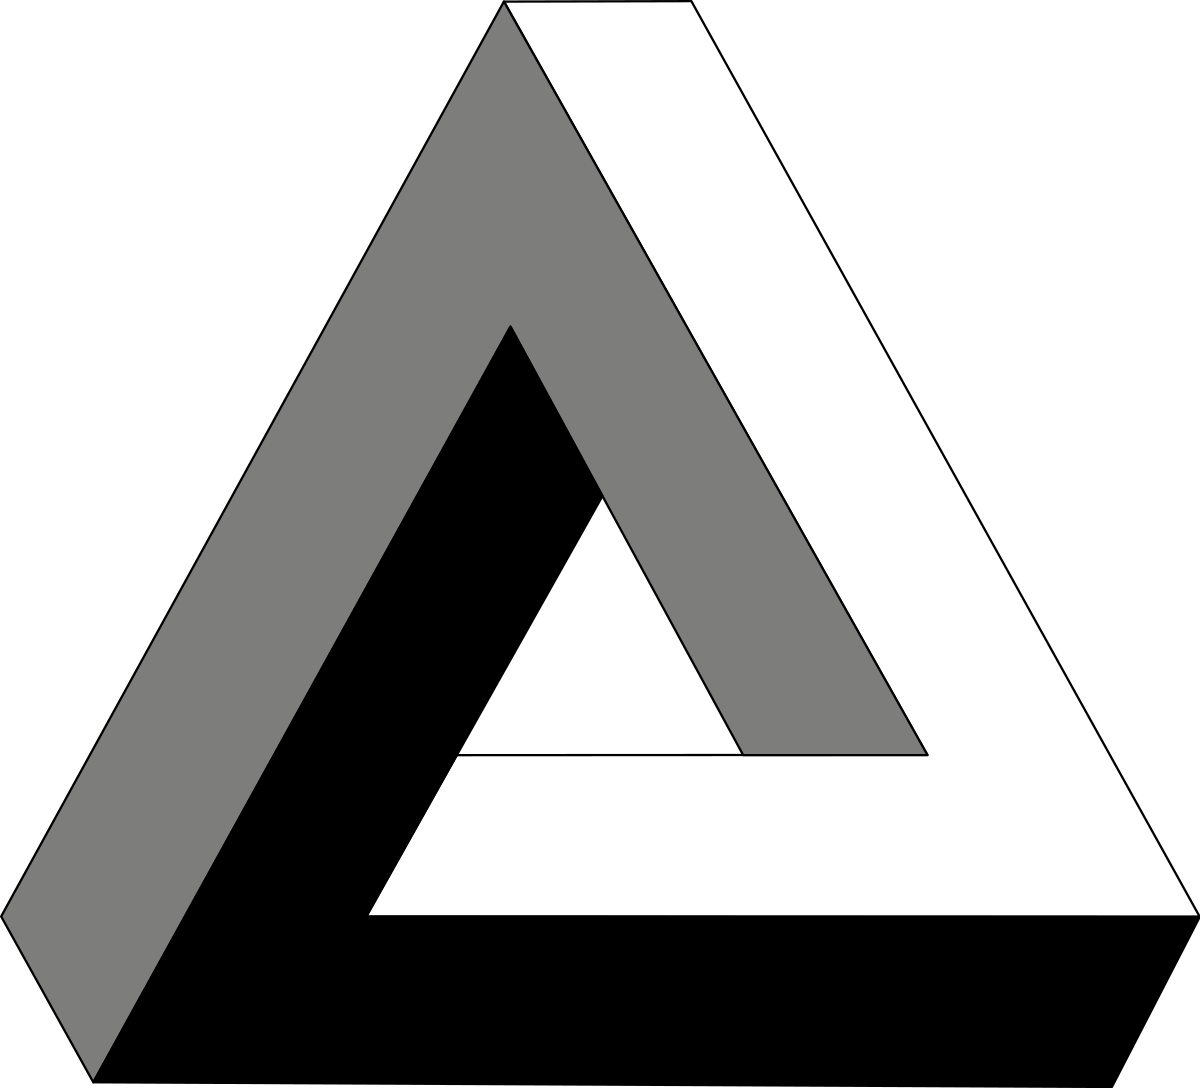 jpg library Penrose triangle